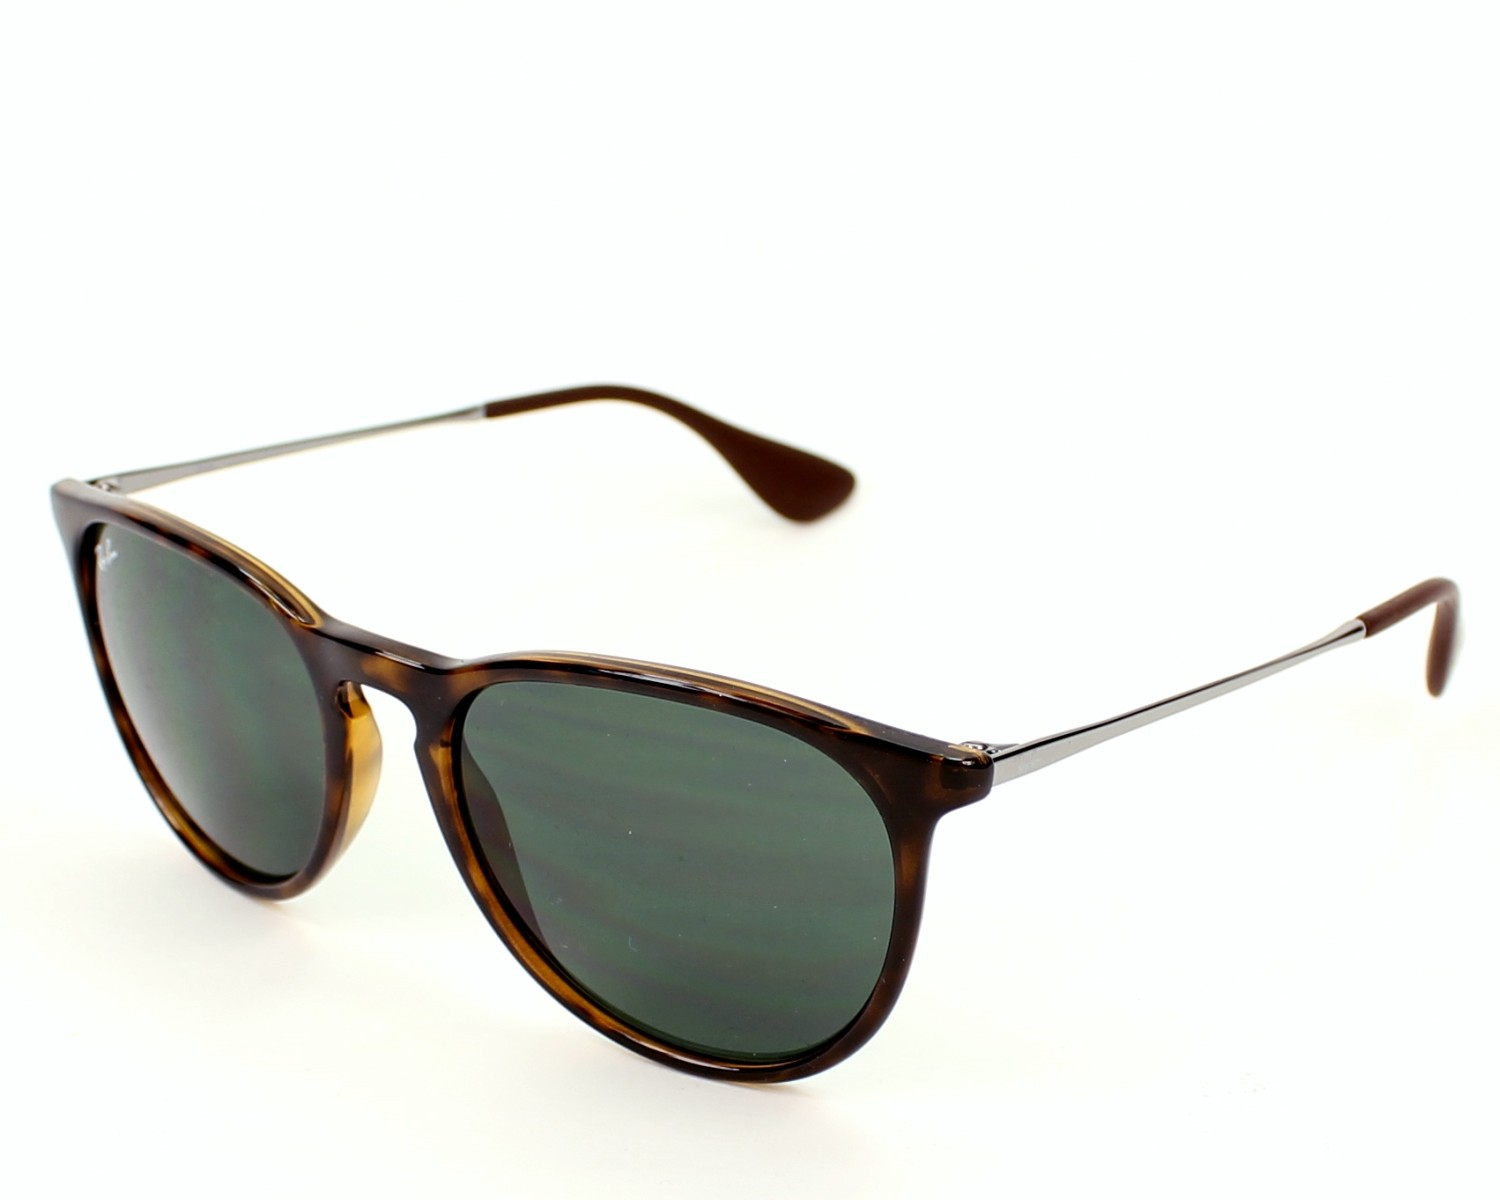 e3329ae8bd Sunglasses Ray-Ban RB-4171 710 71 54-17 Havana Gun profile